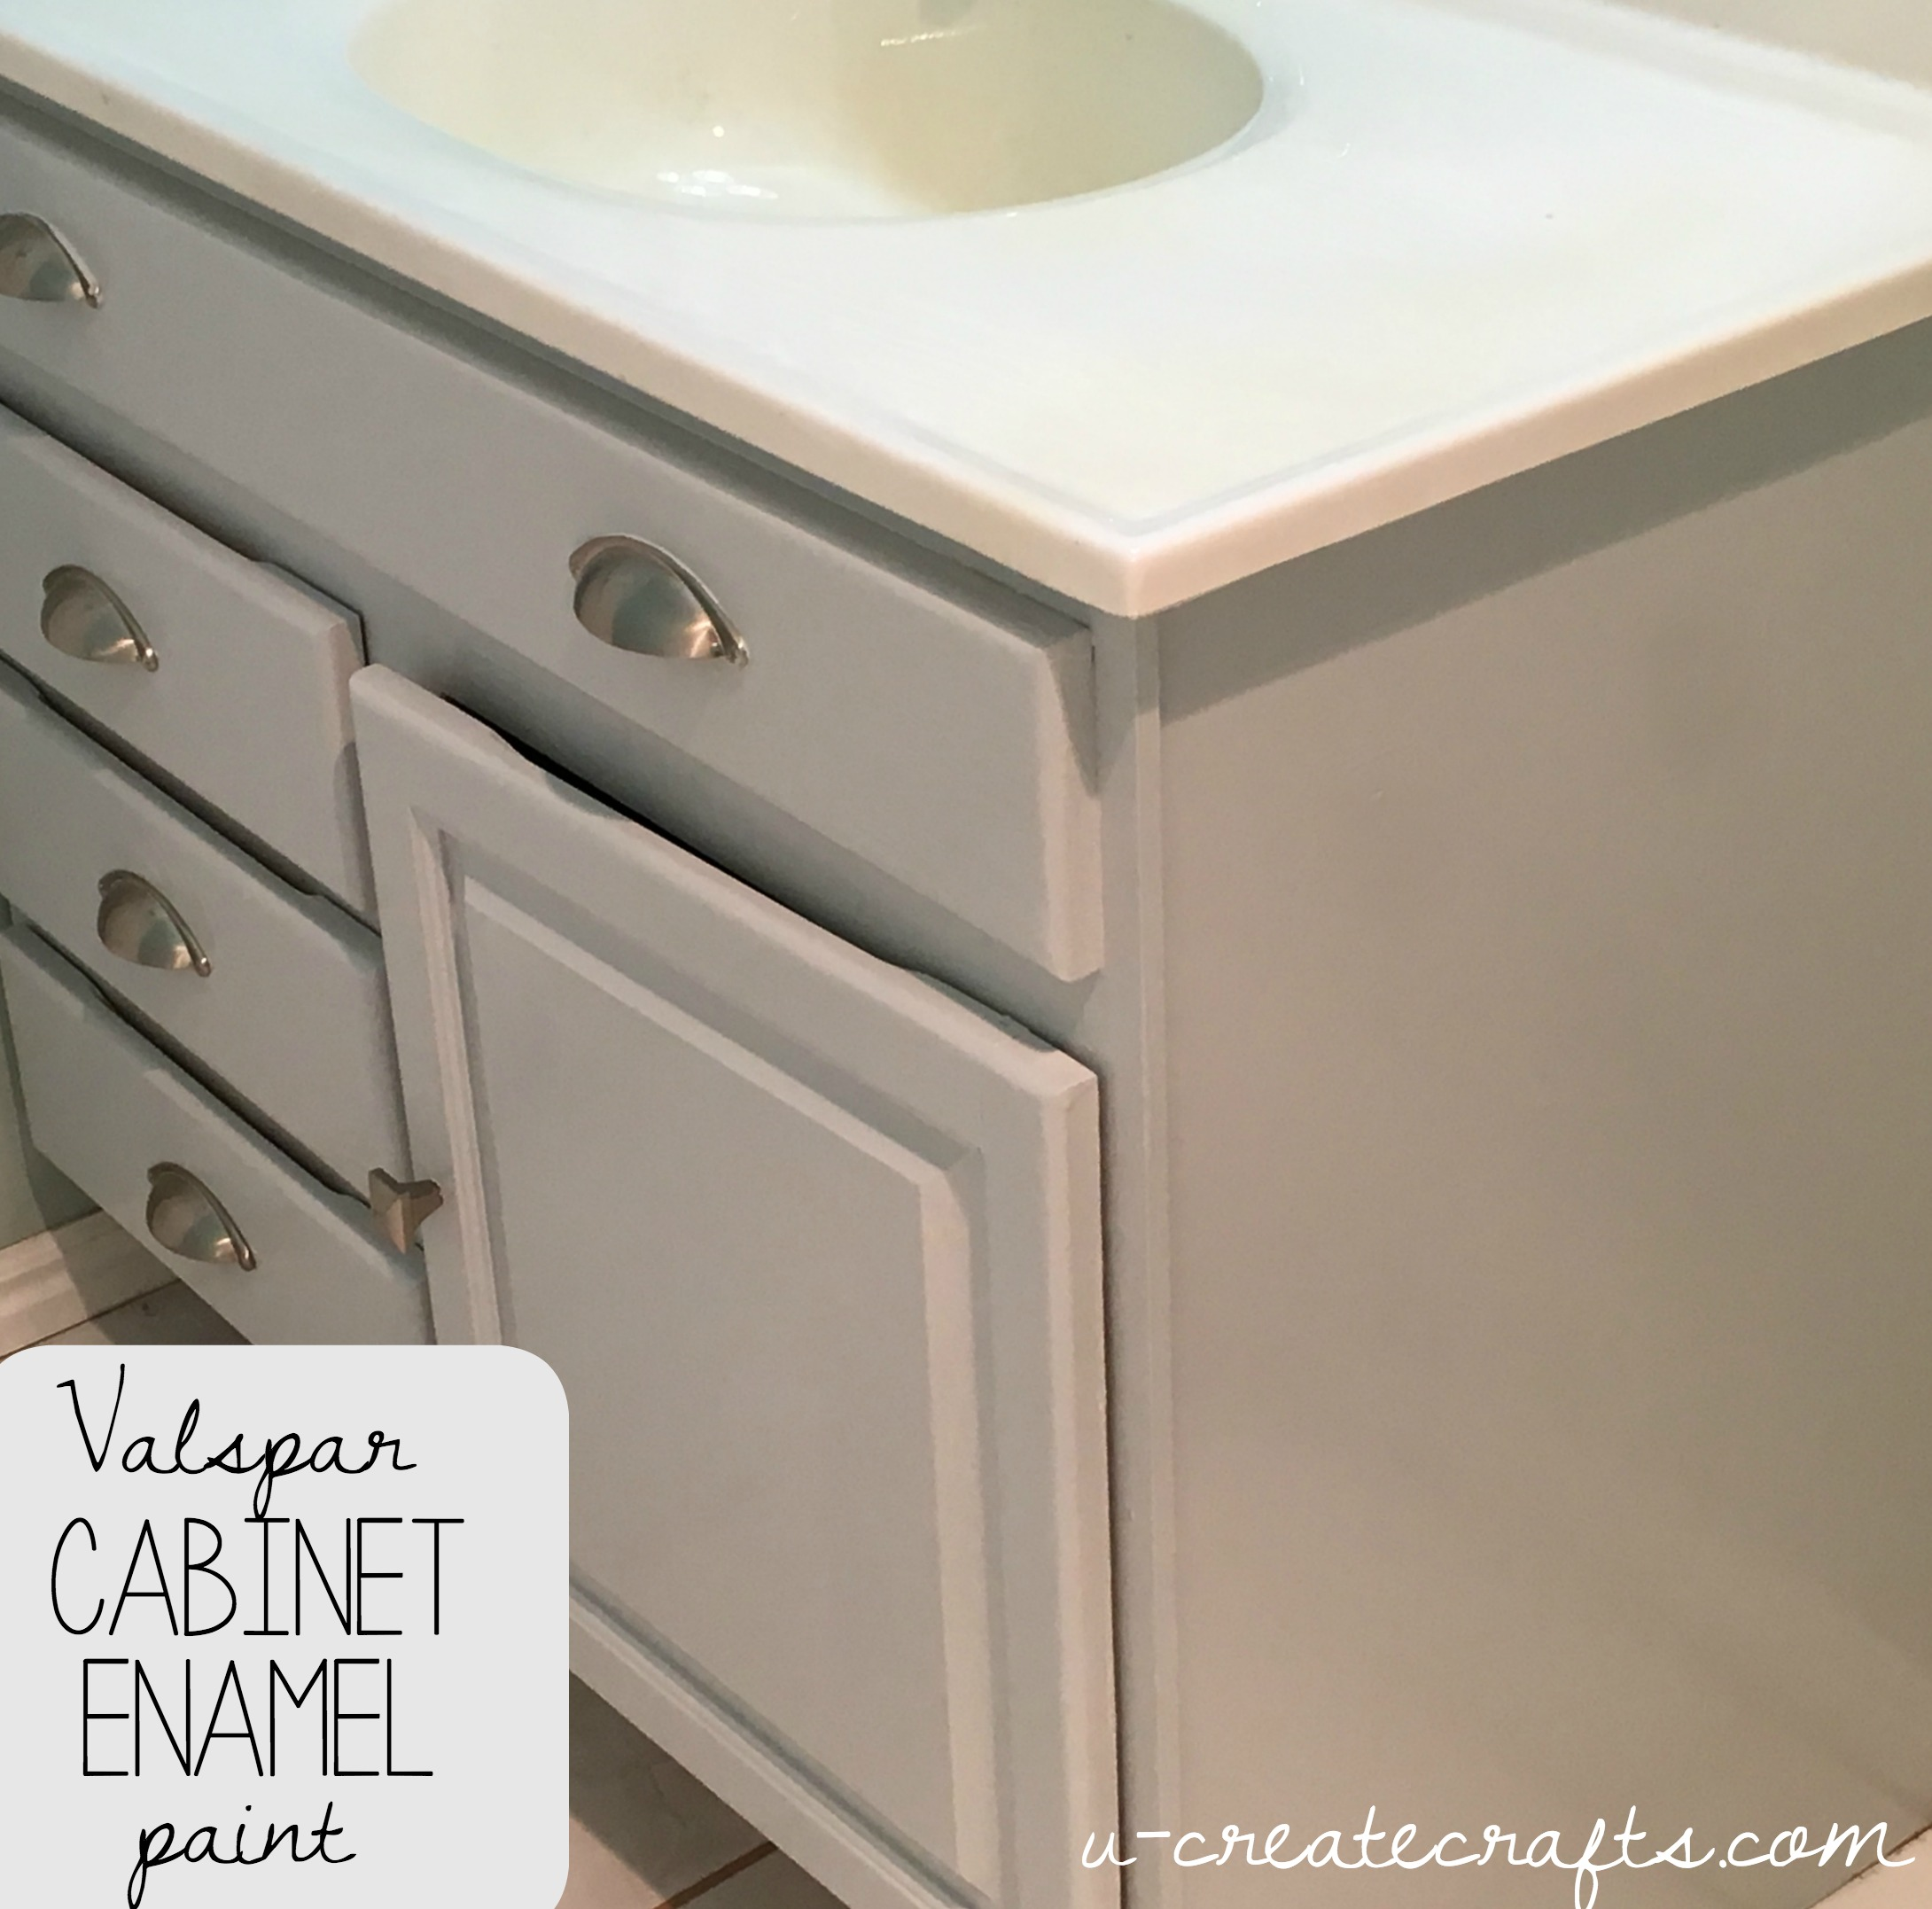 Valspar Cabinet Enamel Paint U Create - Valspar bathroom paint